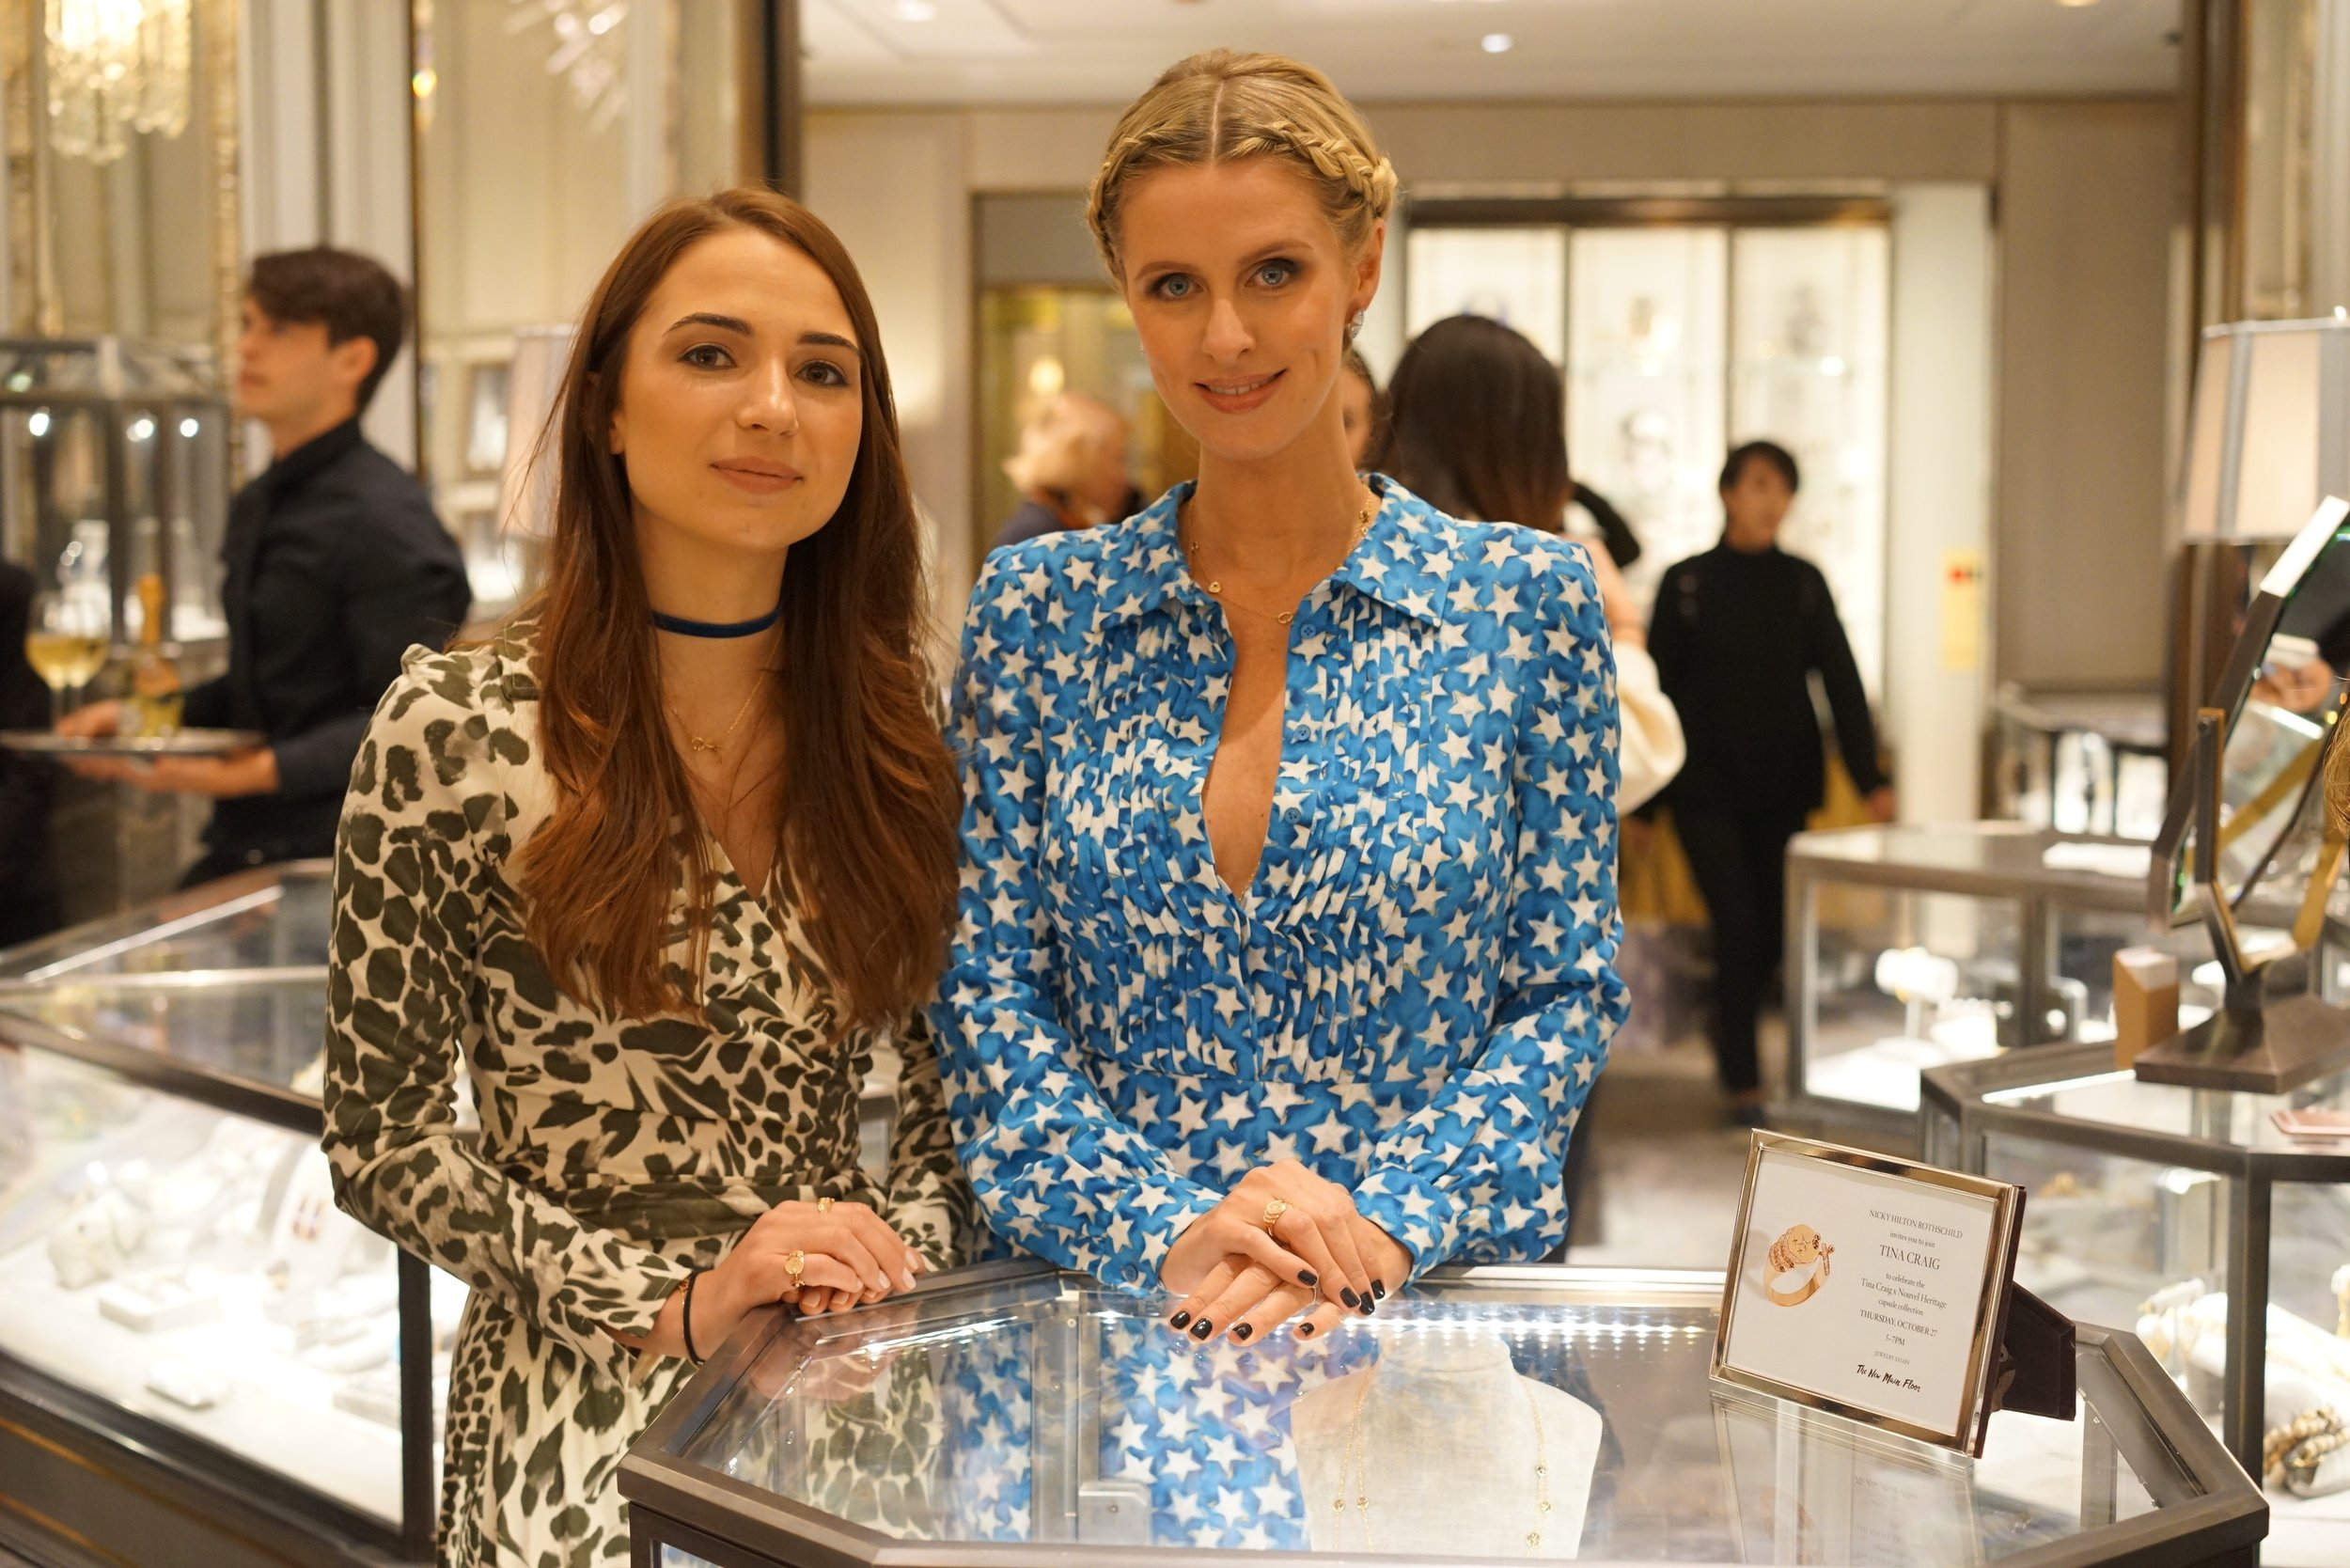 Camille Parruitte and Nicky Hilton Rothschild